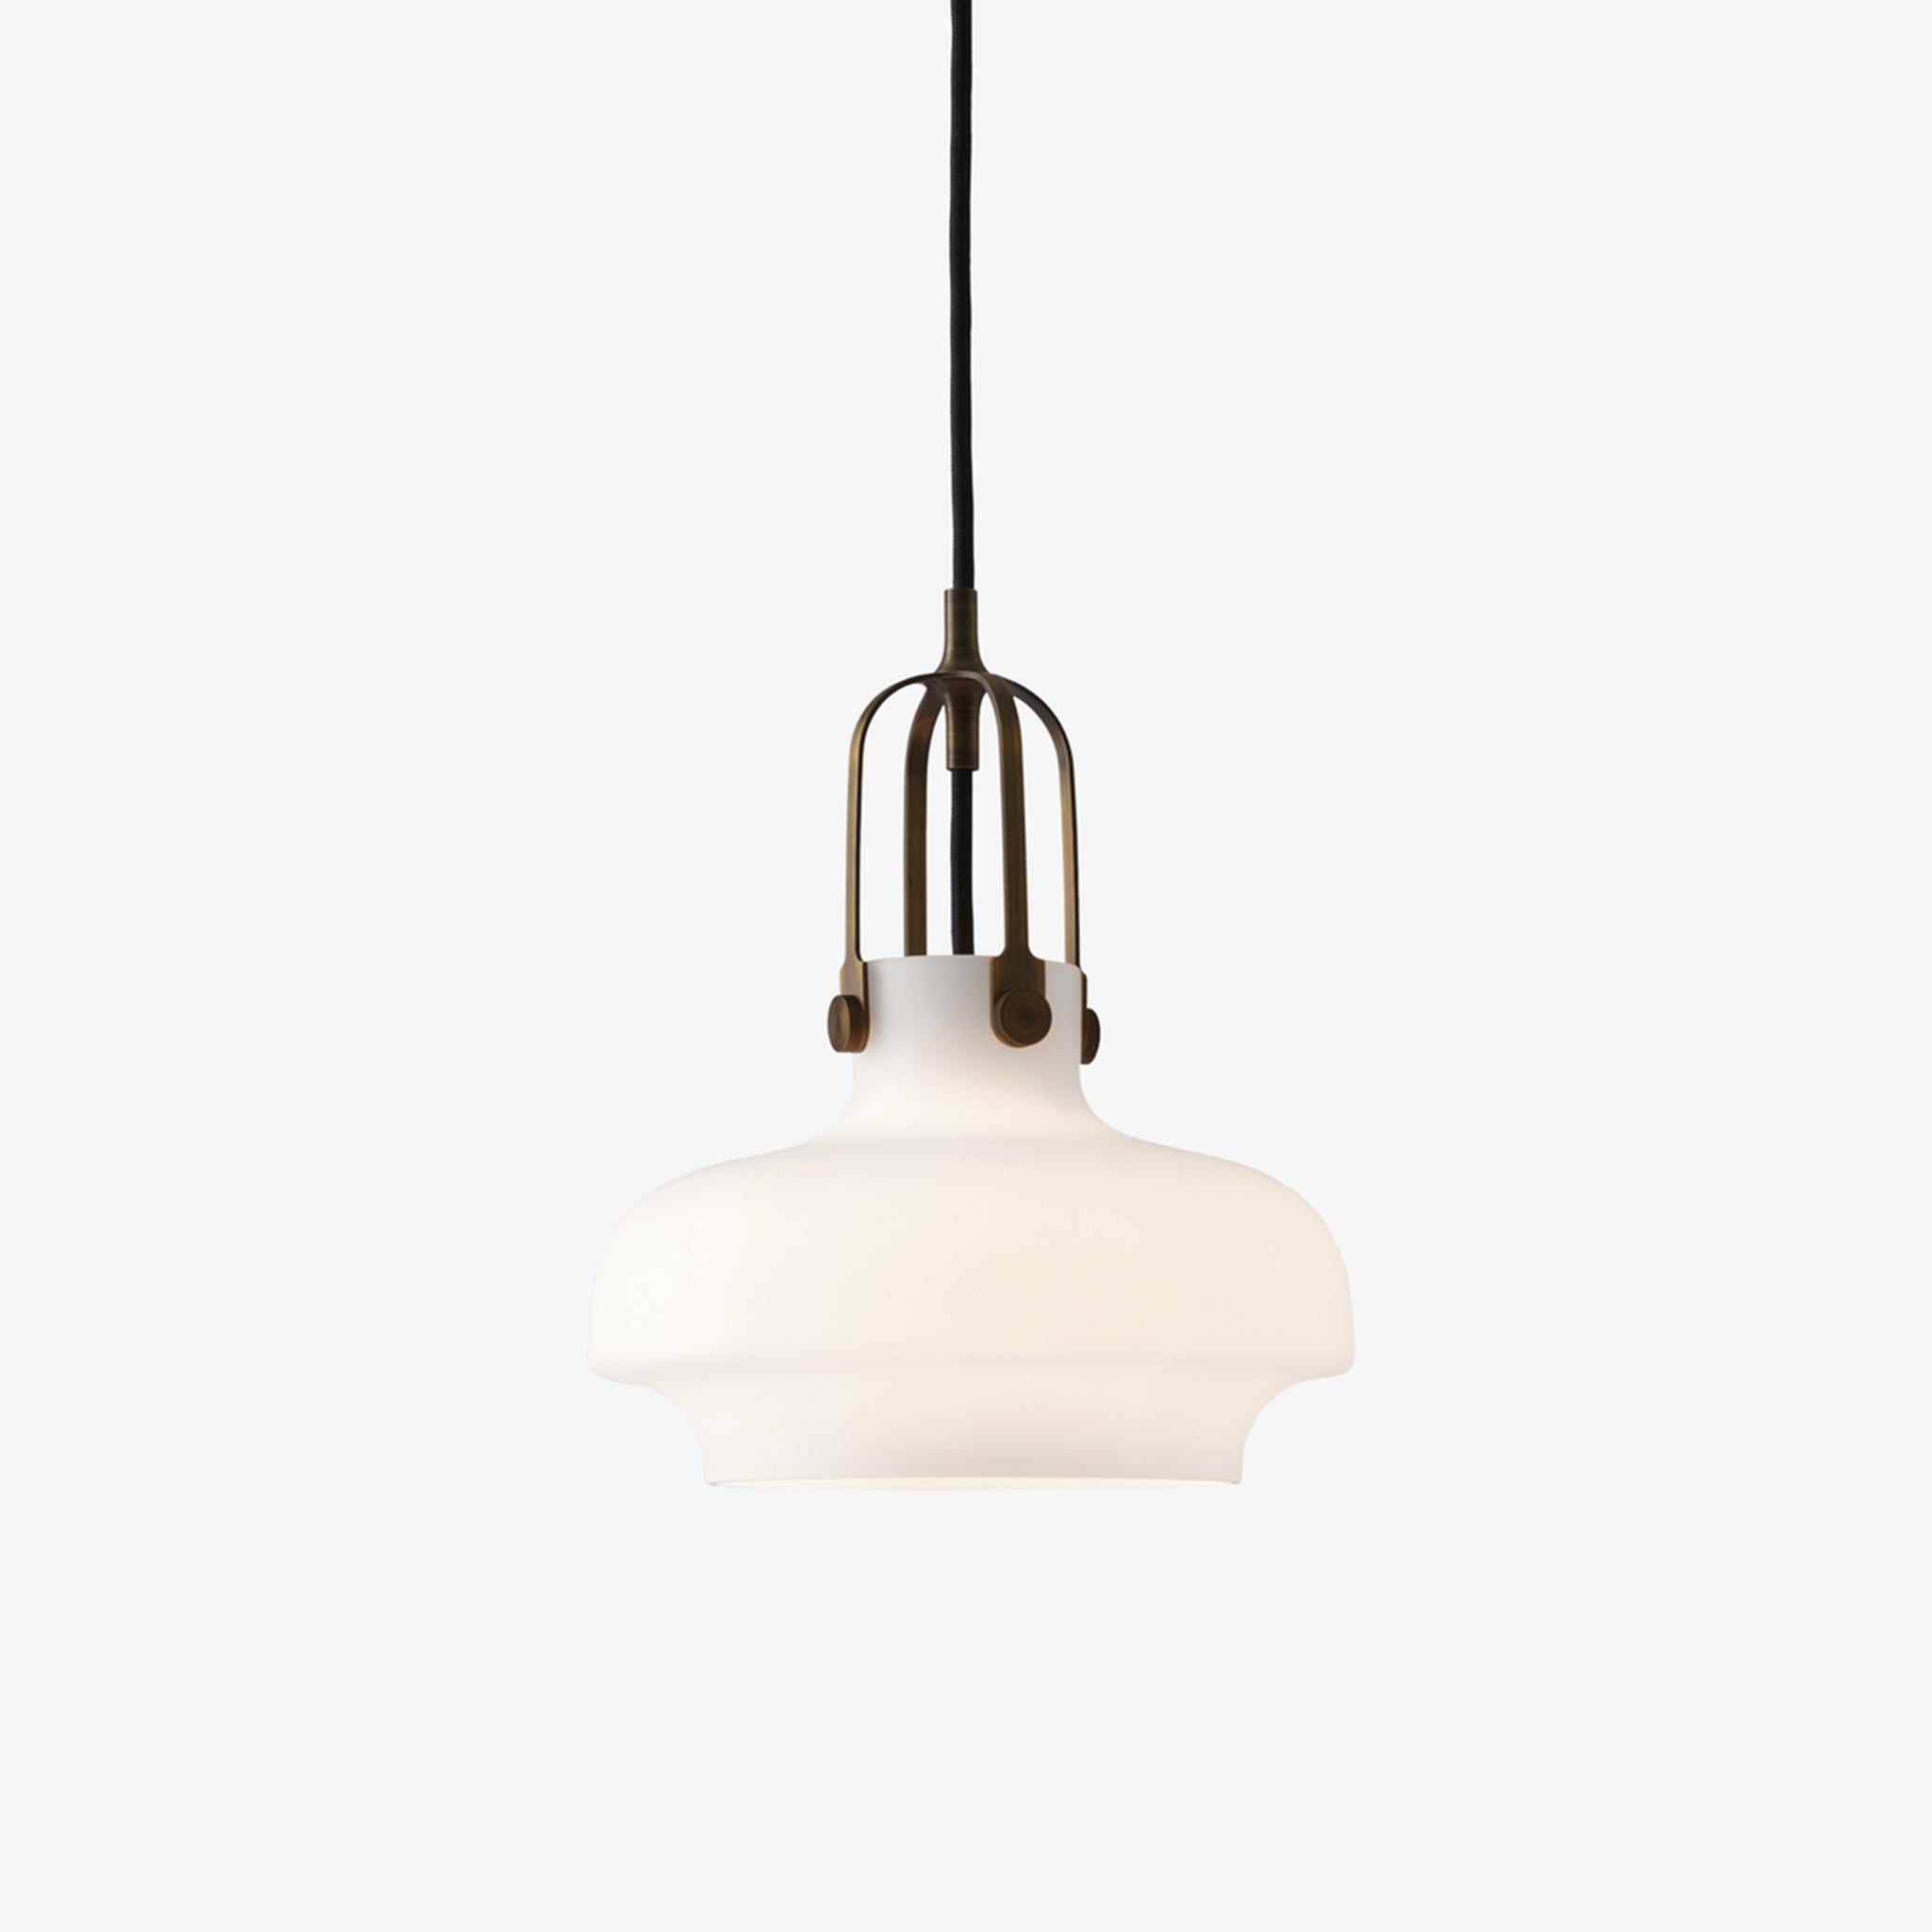 Copenhagen Pendant SC6 / SC7 / SC8 by Space Copenhagen for &Tradition